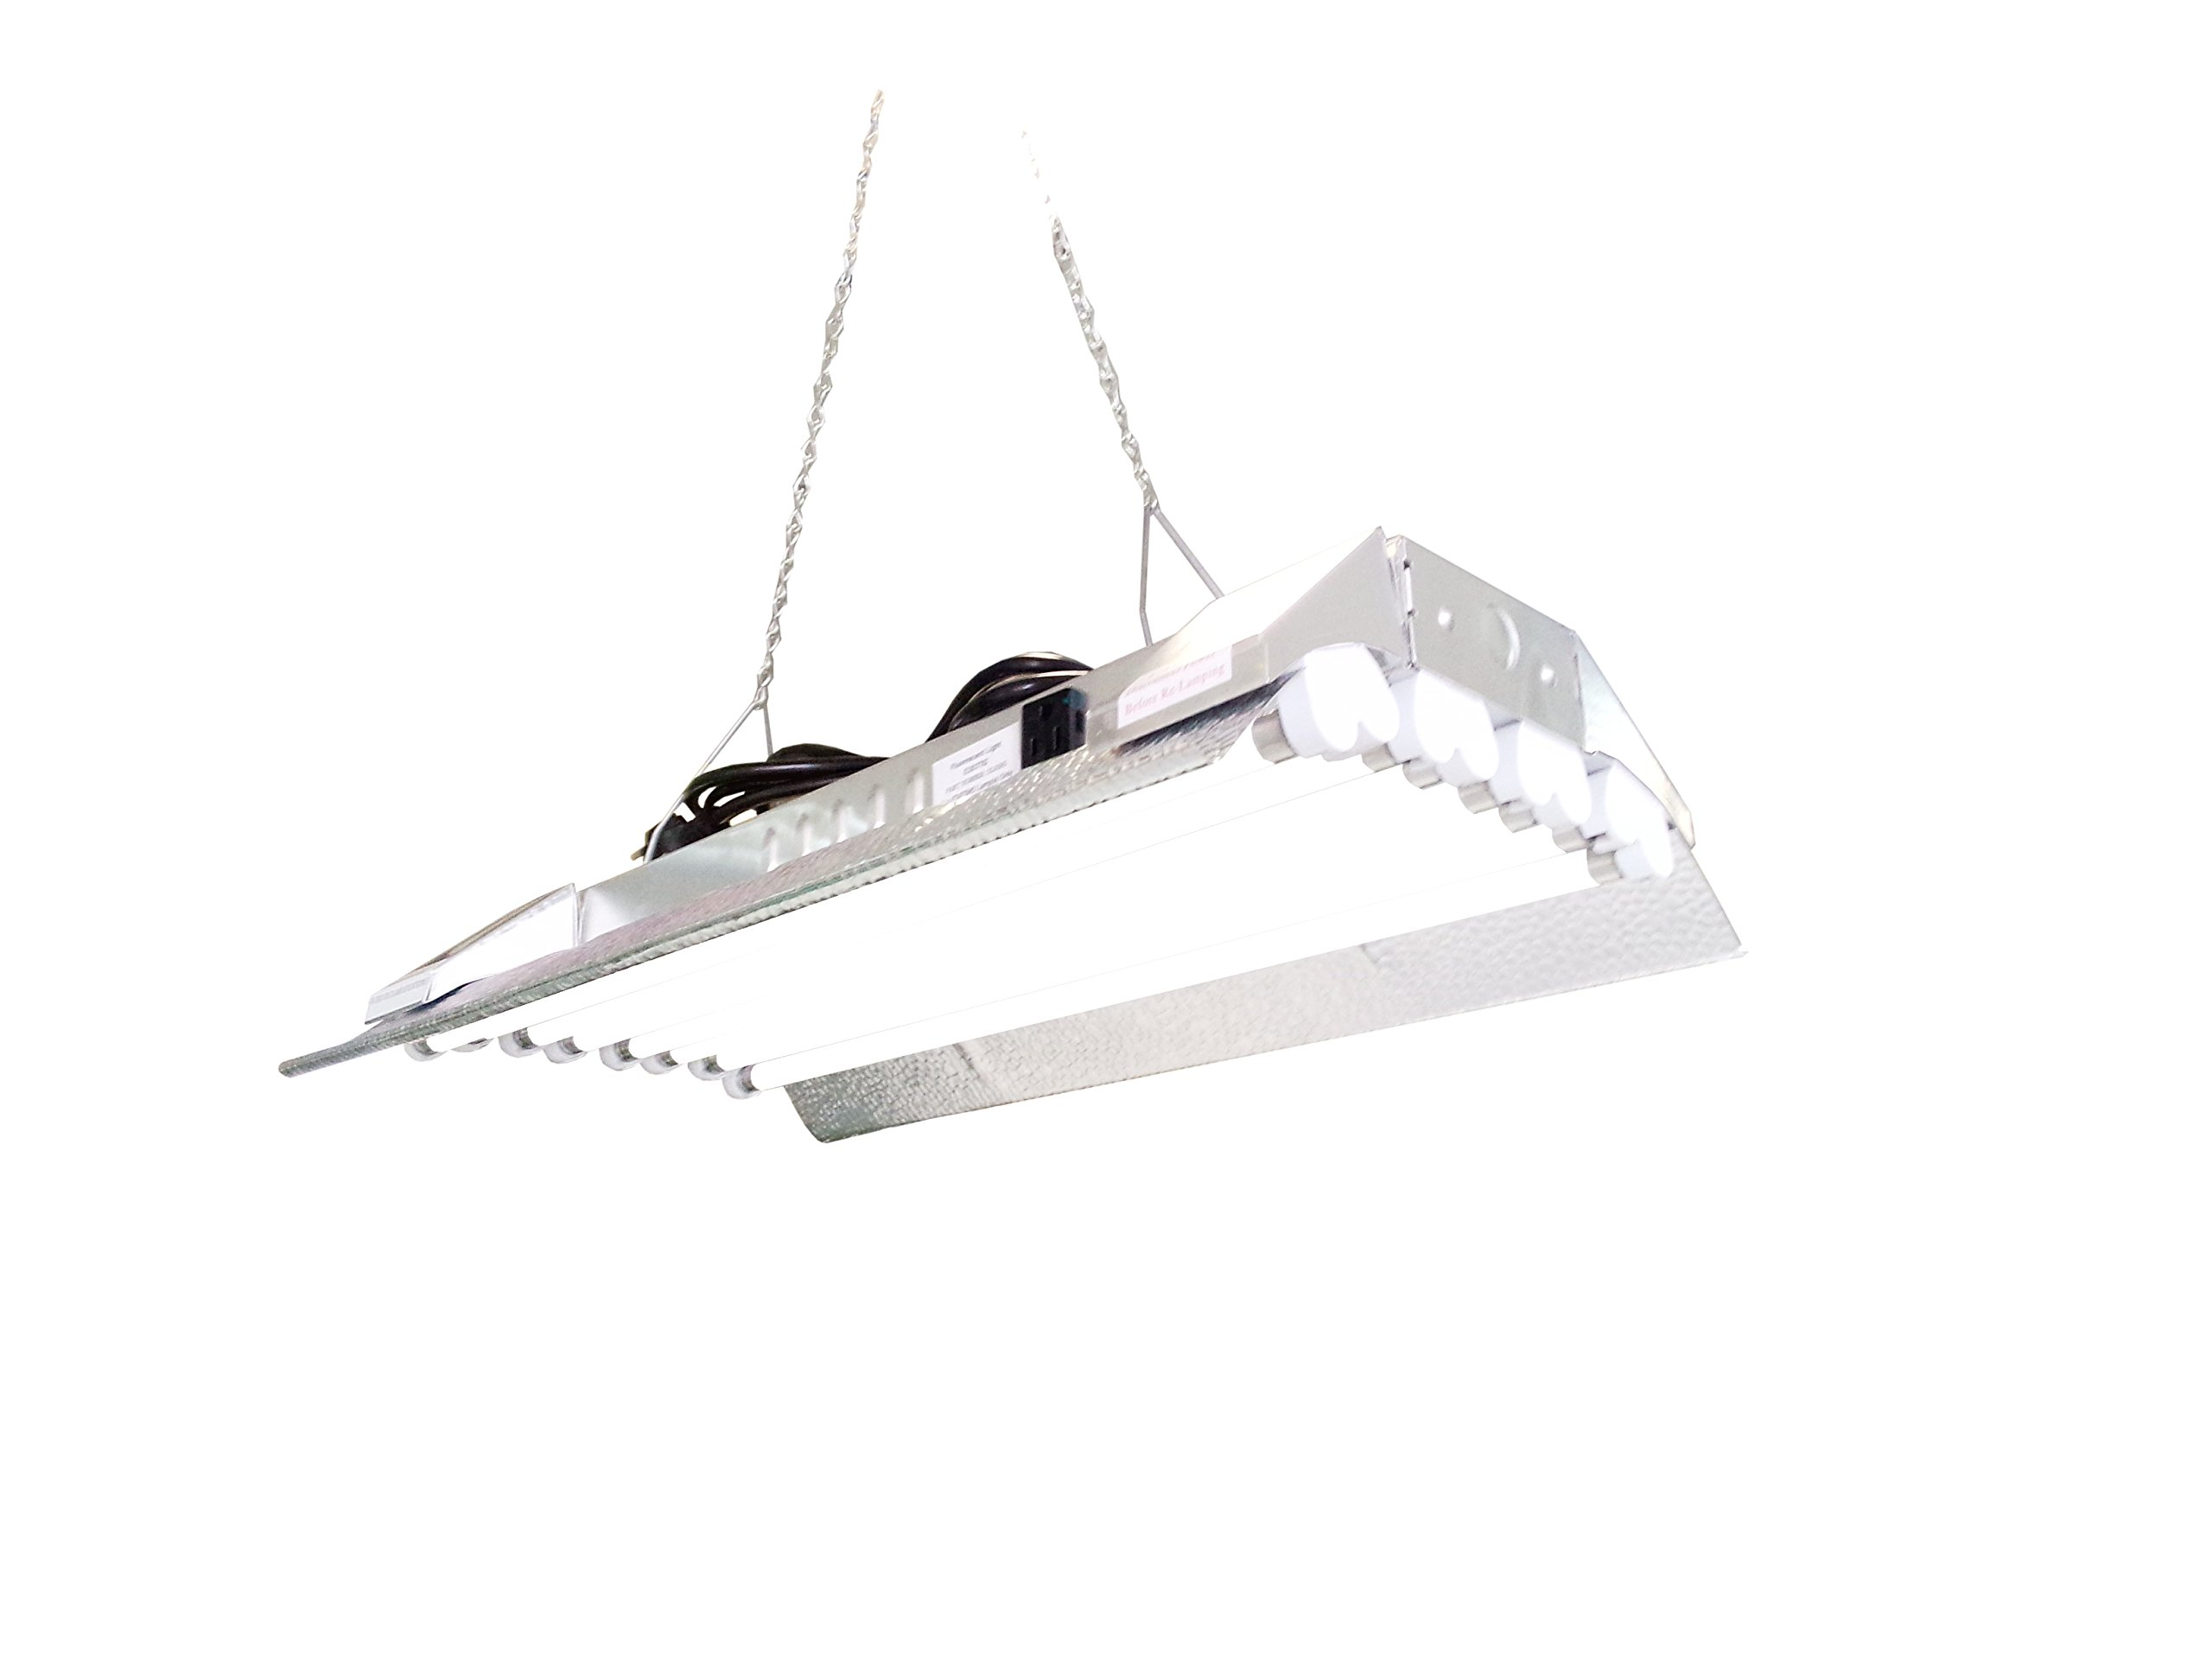 T5 HO Grow Light - 2 FT 8 Lamps - DL828S Fluorescent Hydroponic Indoor Fixture Bloom Veg Daisy Chain with Bulb by DuroLux (Image #1)